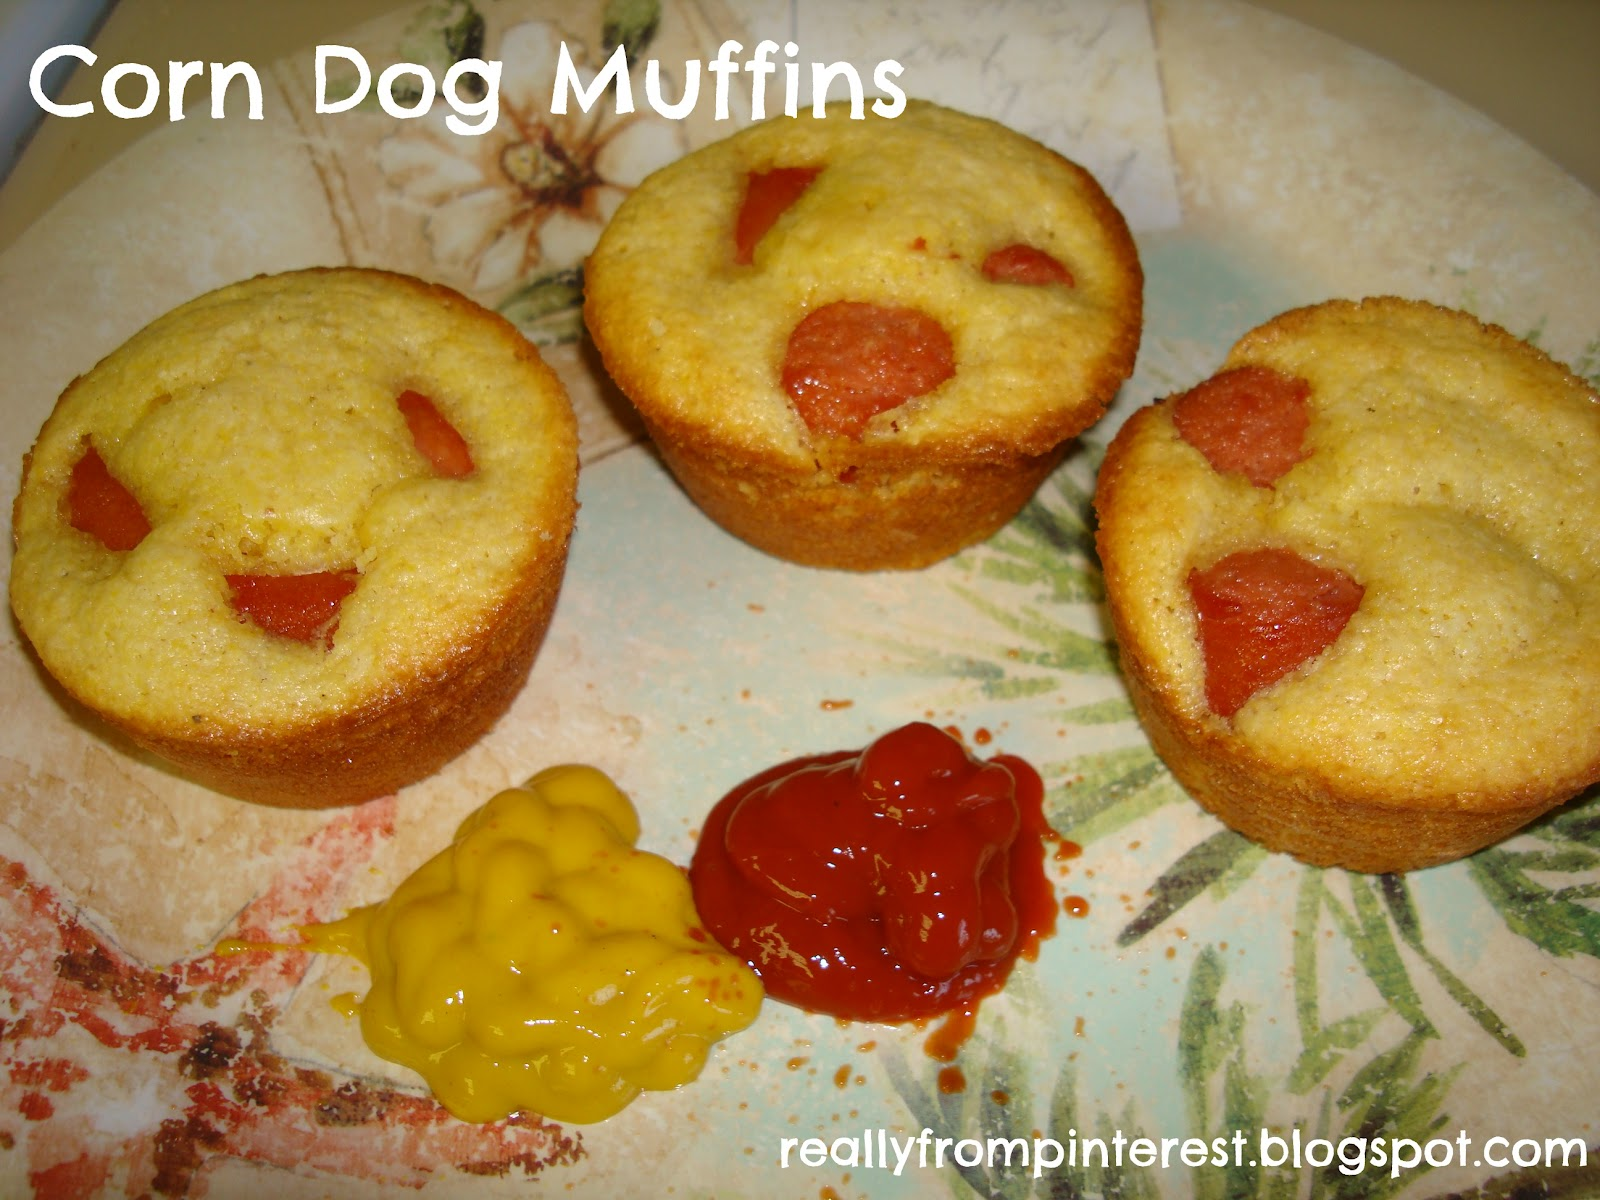 All My Great Ideas Are Really From Pinterest: Corn Dog Muffins